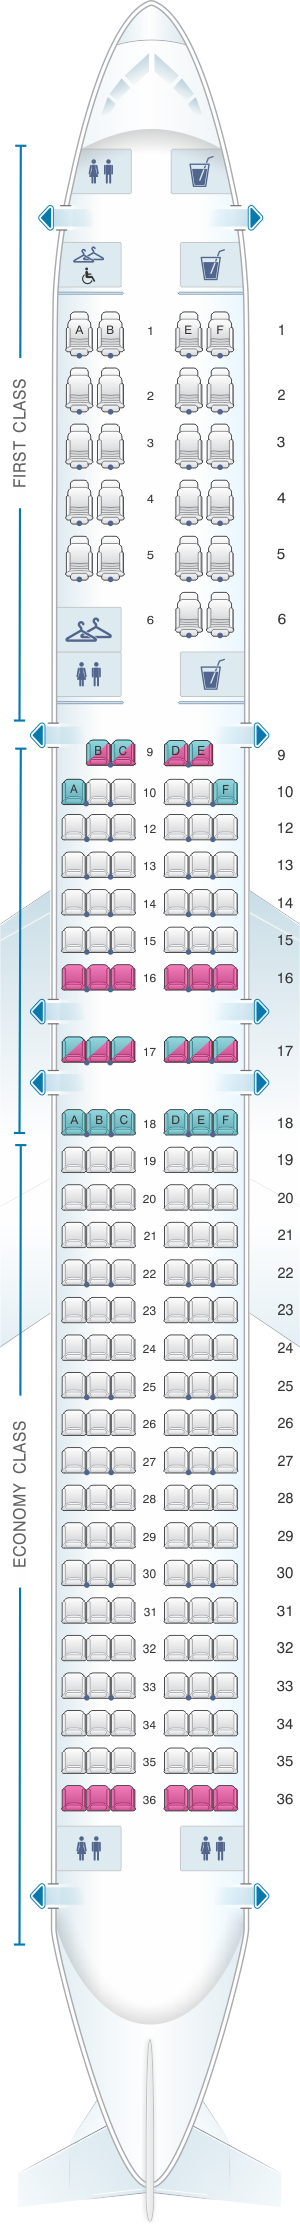 Seat map for American Airlines Boeing B757 Domestic